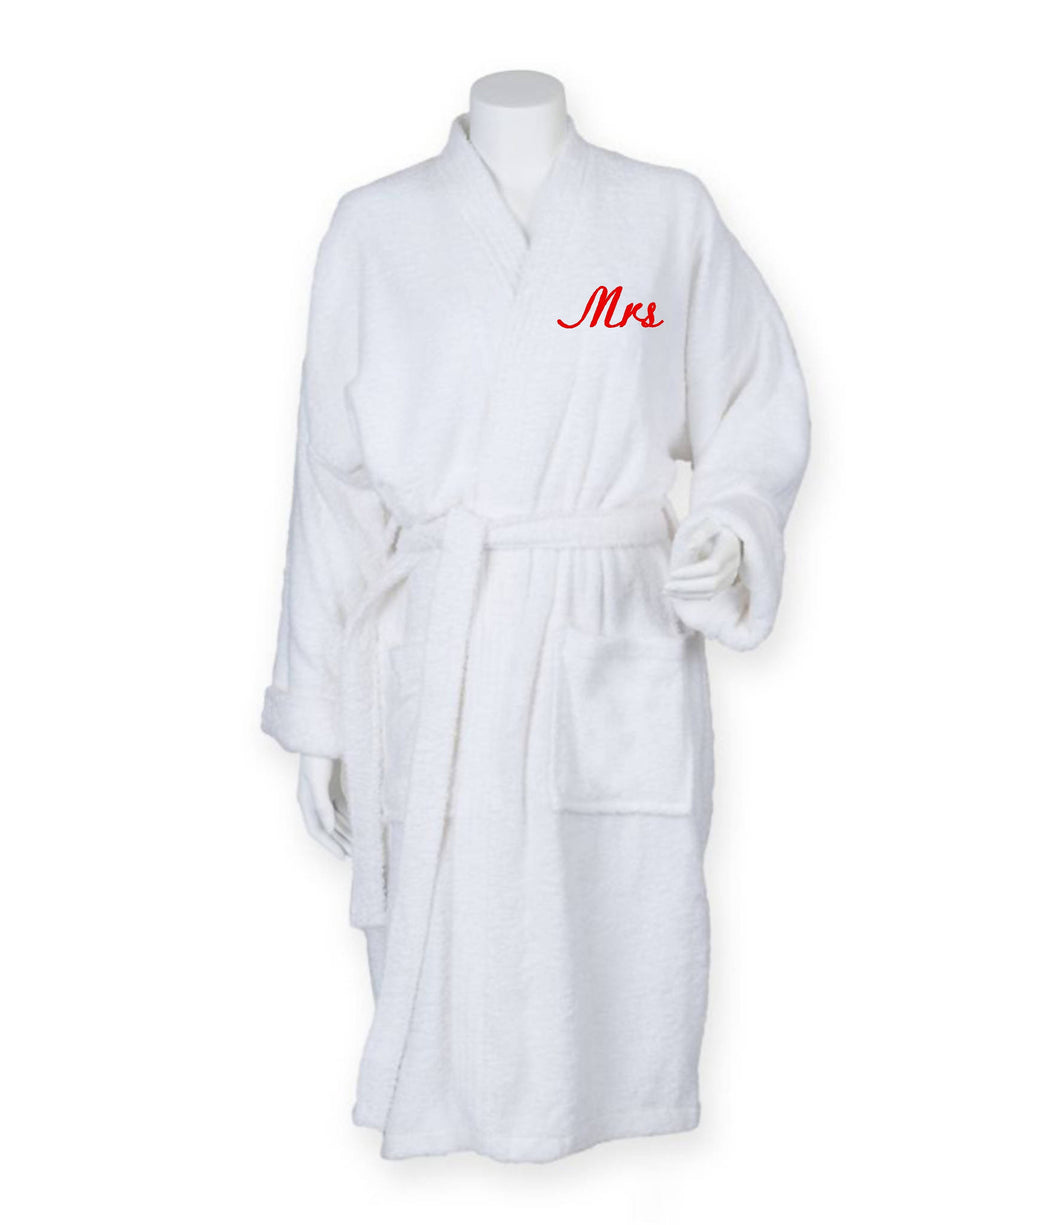 Towelling Robe Mrs